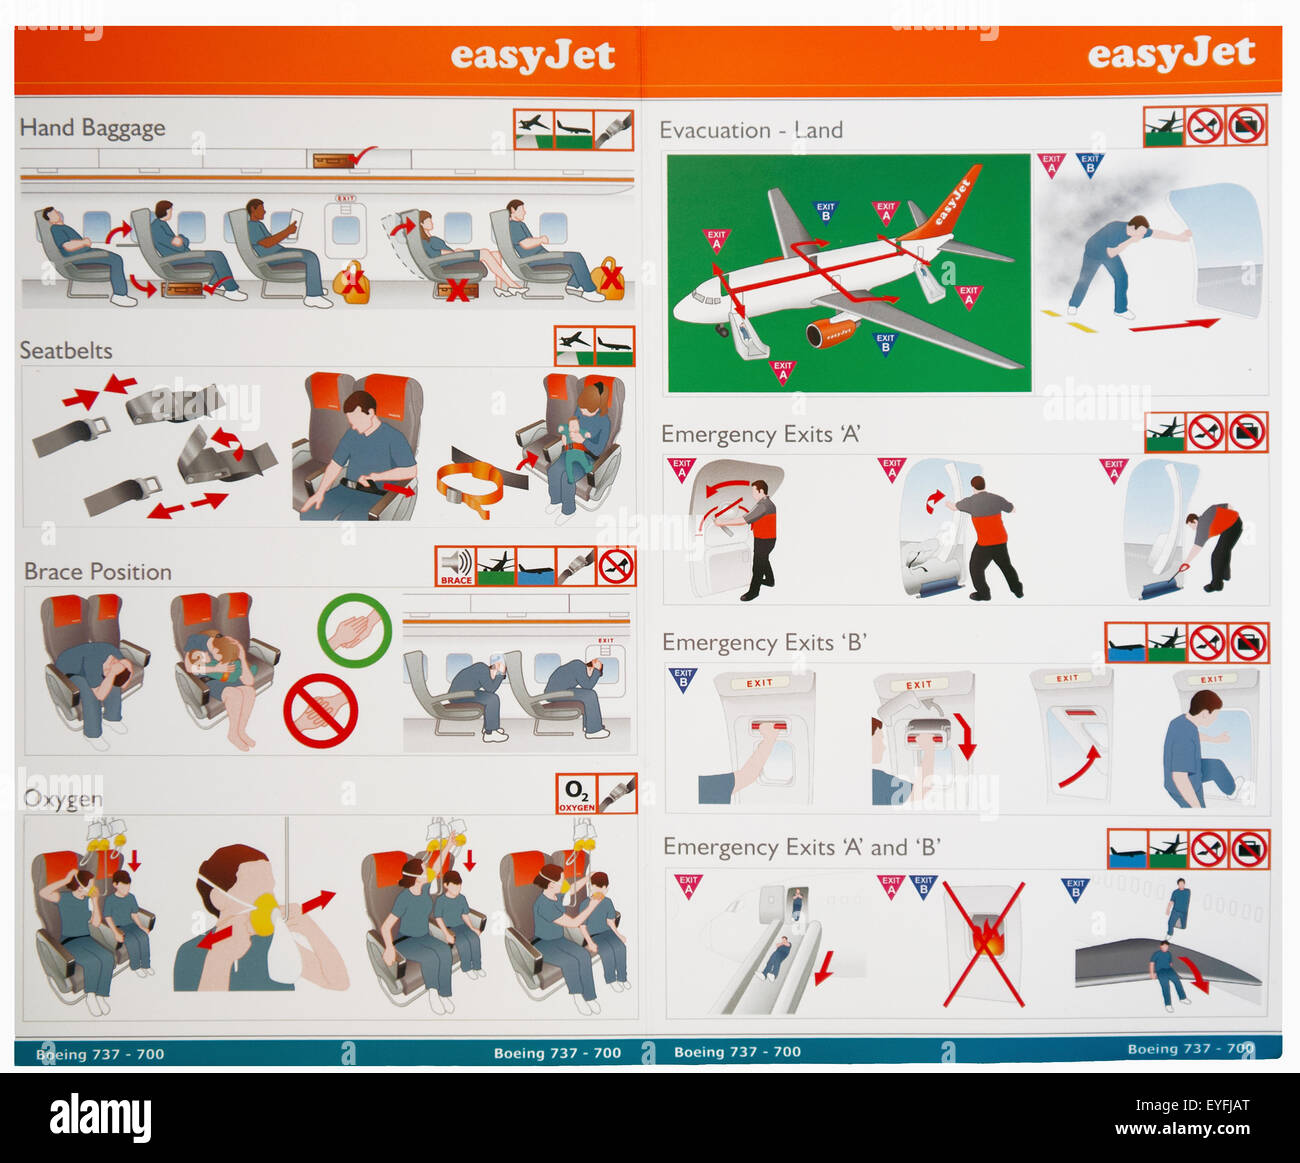 Germania Airlines Boeing 737-300 Safety Card